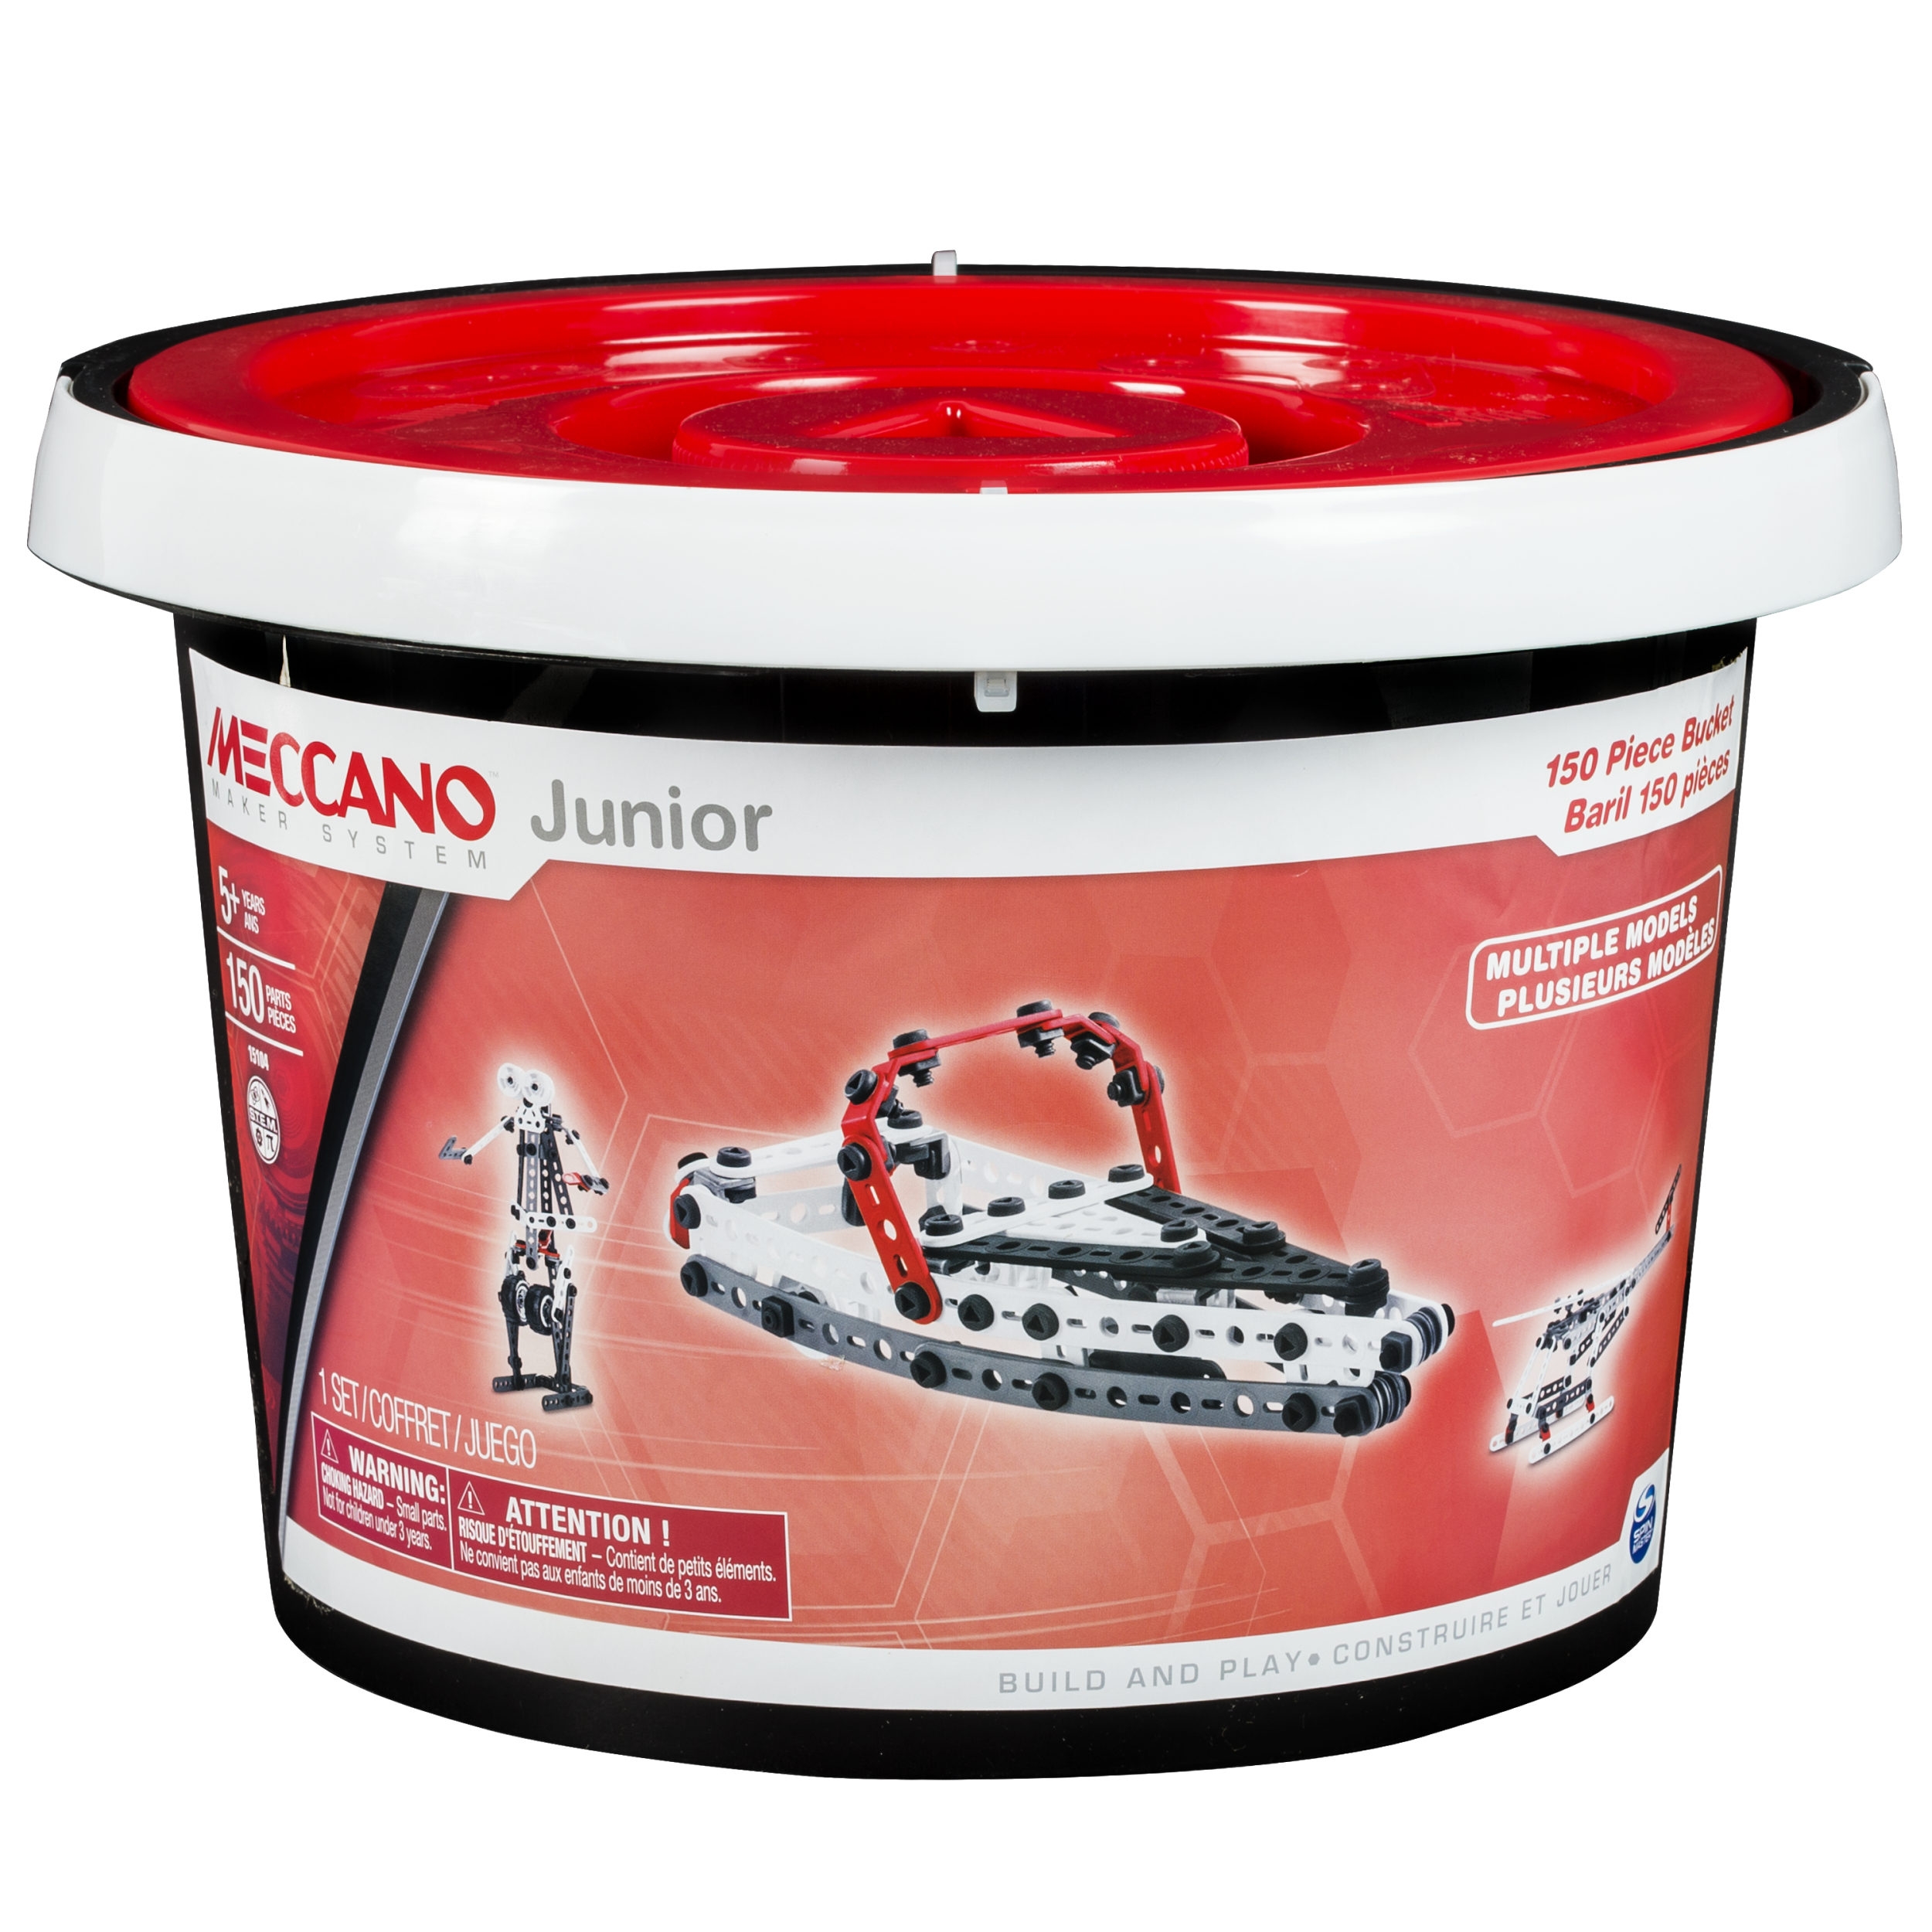 Meccano by Erector Junior 150 Piece Bucket